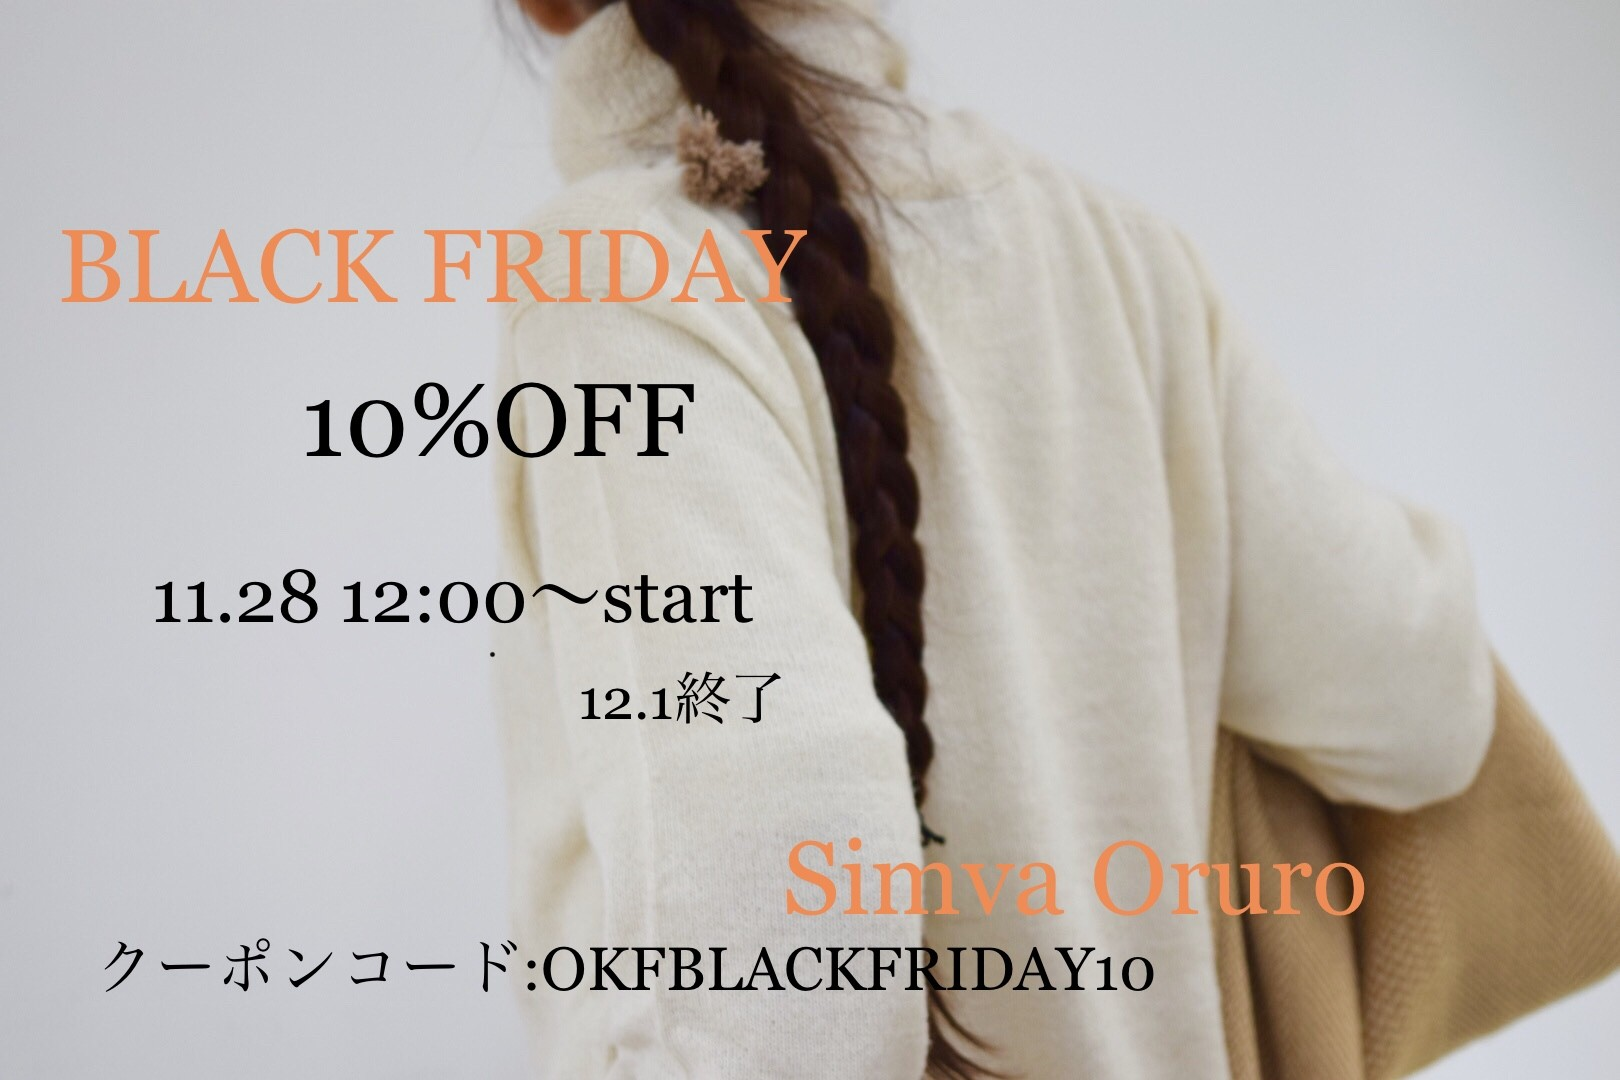 BLACKFRIDAY10%off